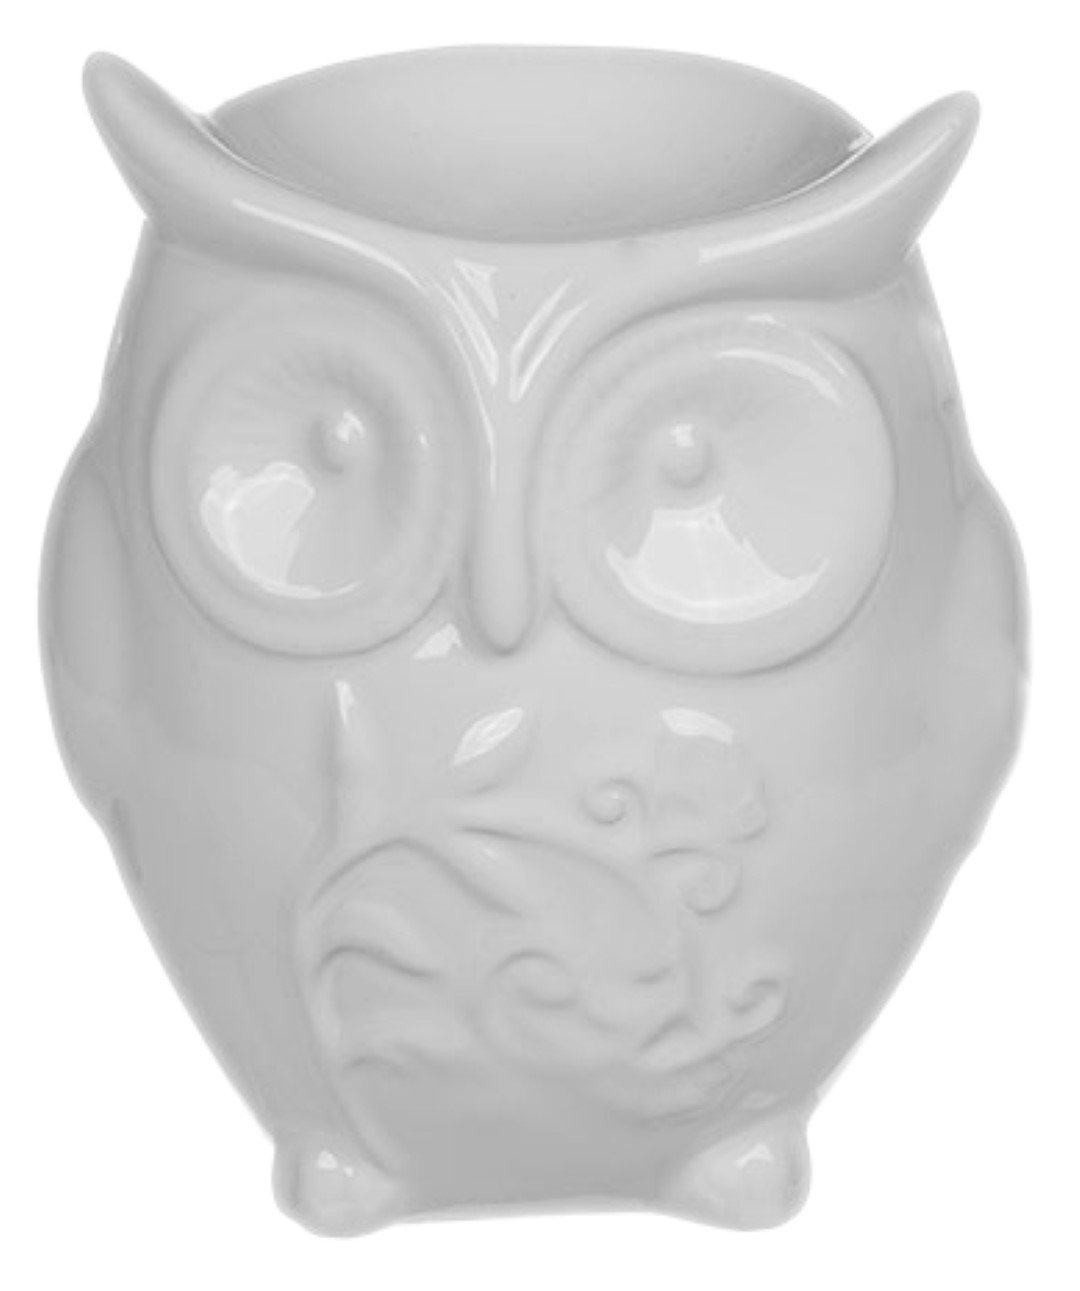 Ceramic Owl Oil Burner 10 cm (Grey) Piquaboo